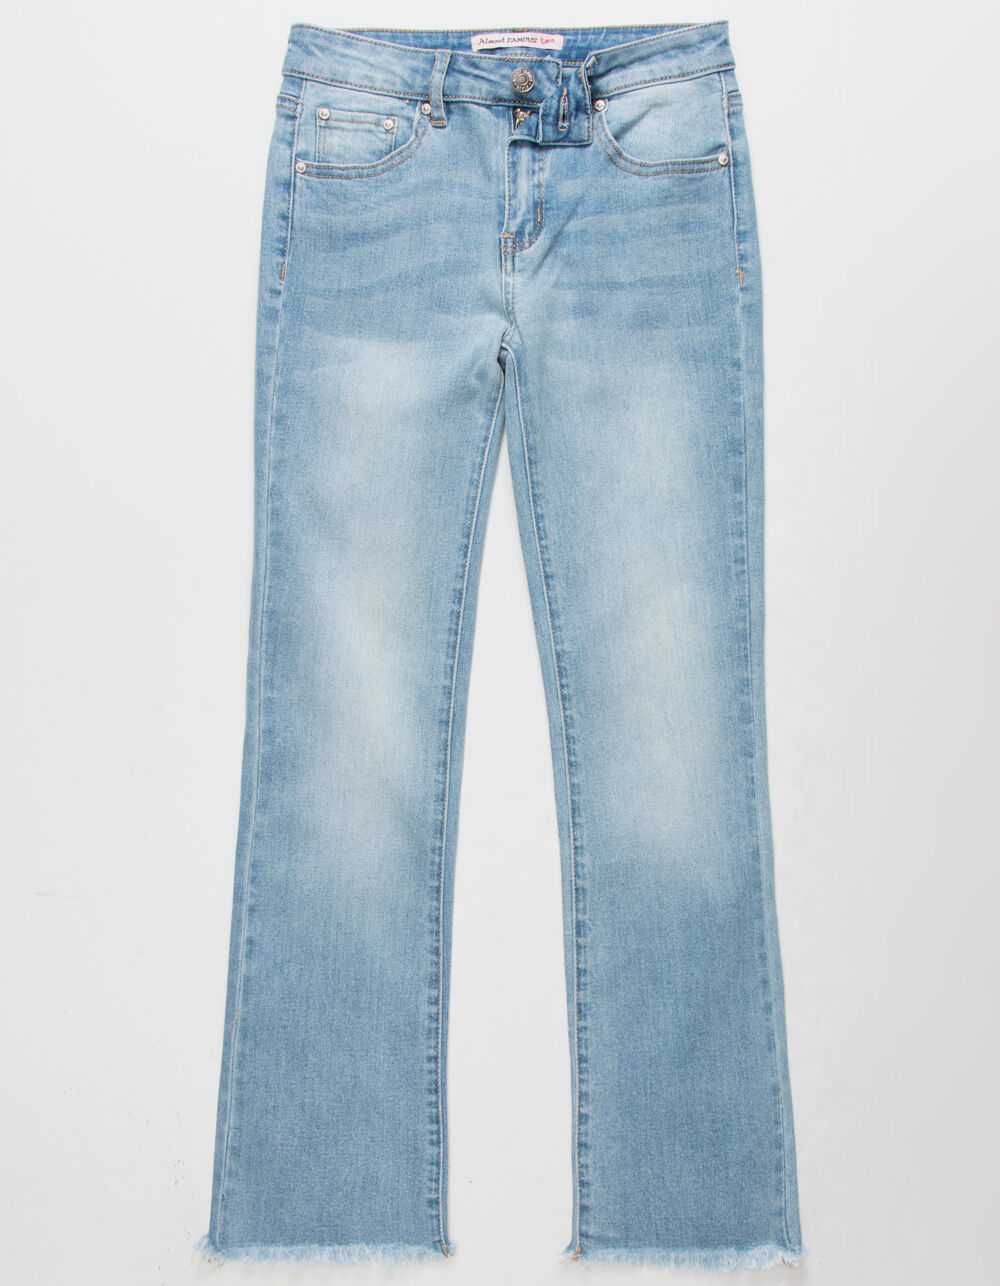 ALMOST FAMOUS Straight Leg Girls Crop Jeans